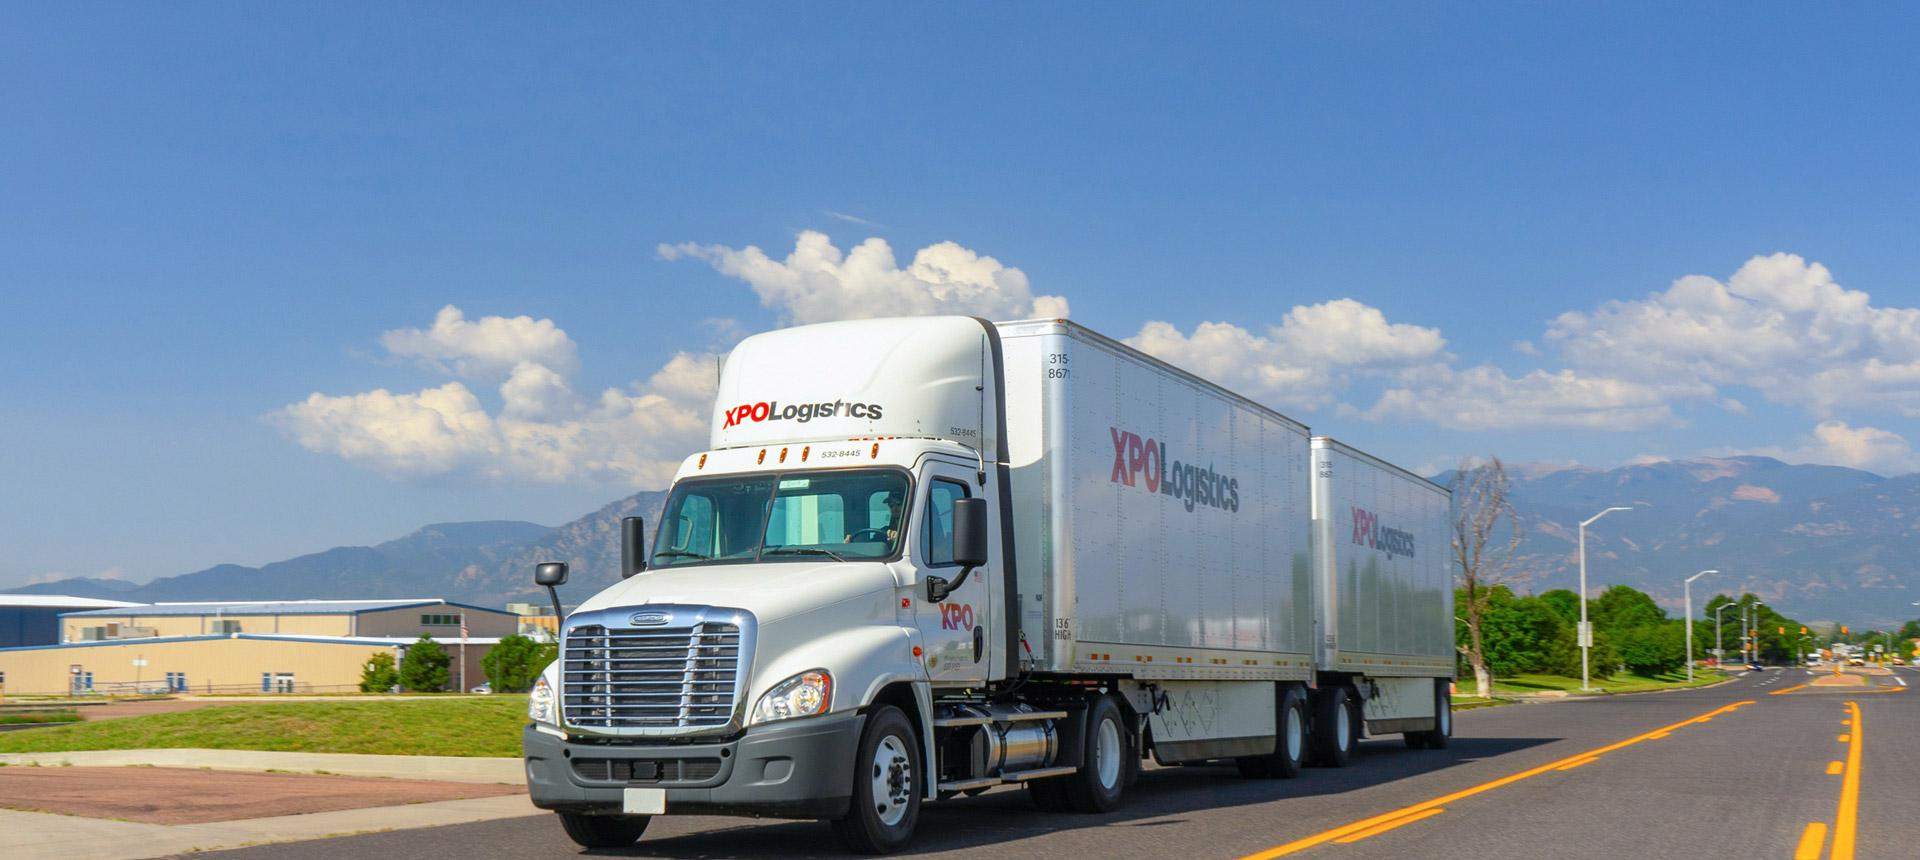 XPO's double truck on highway